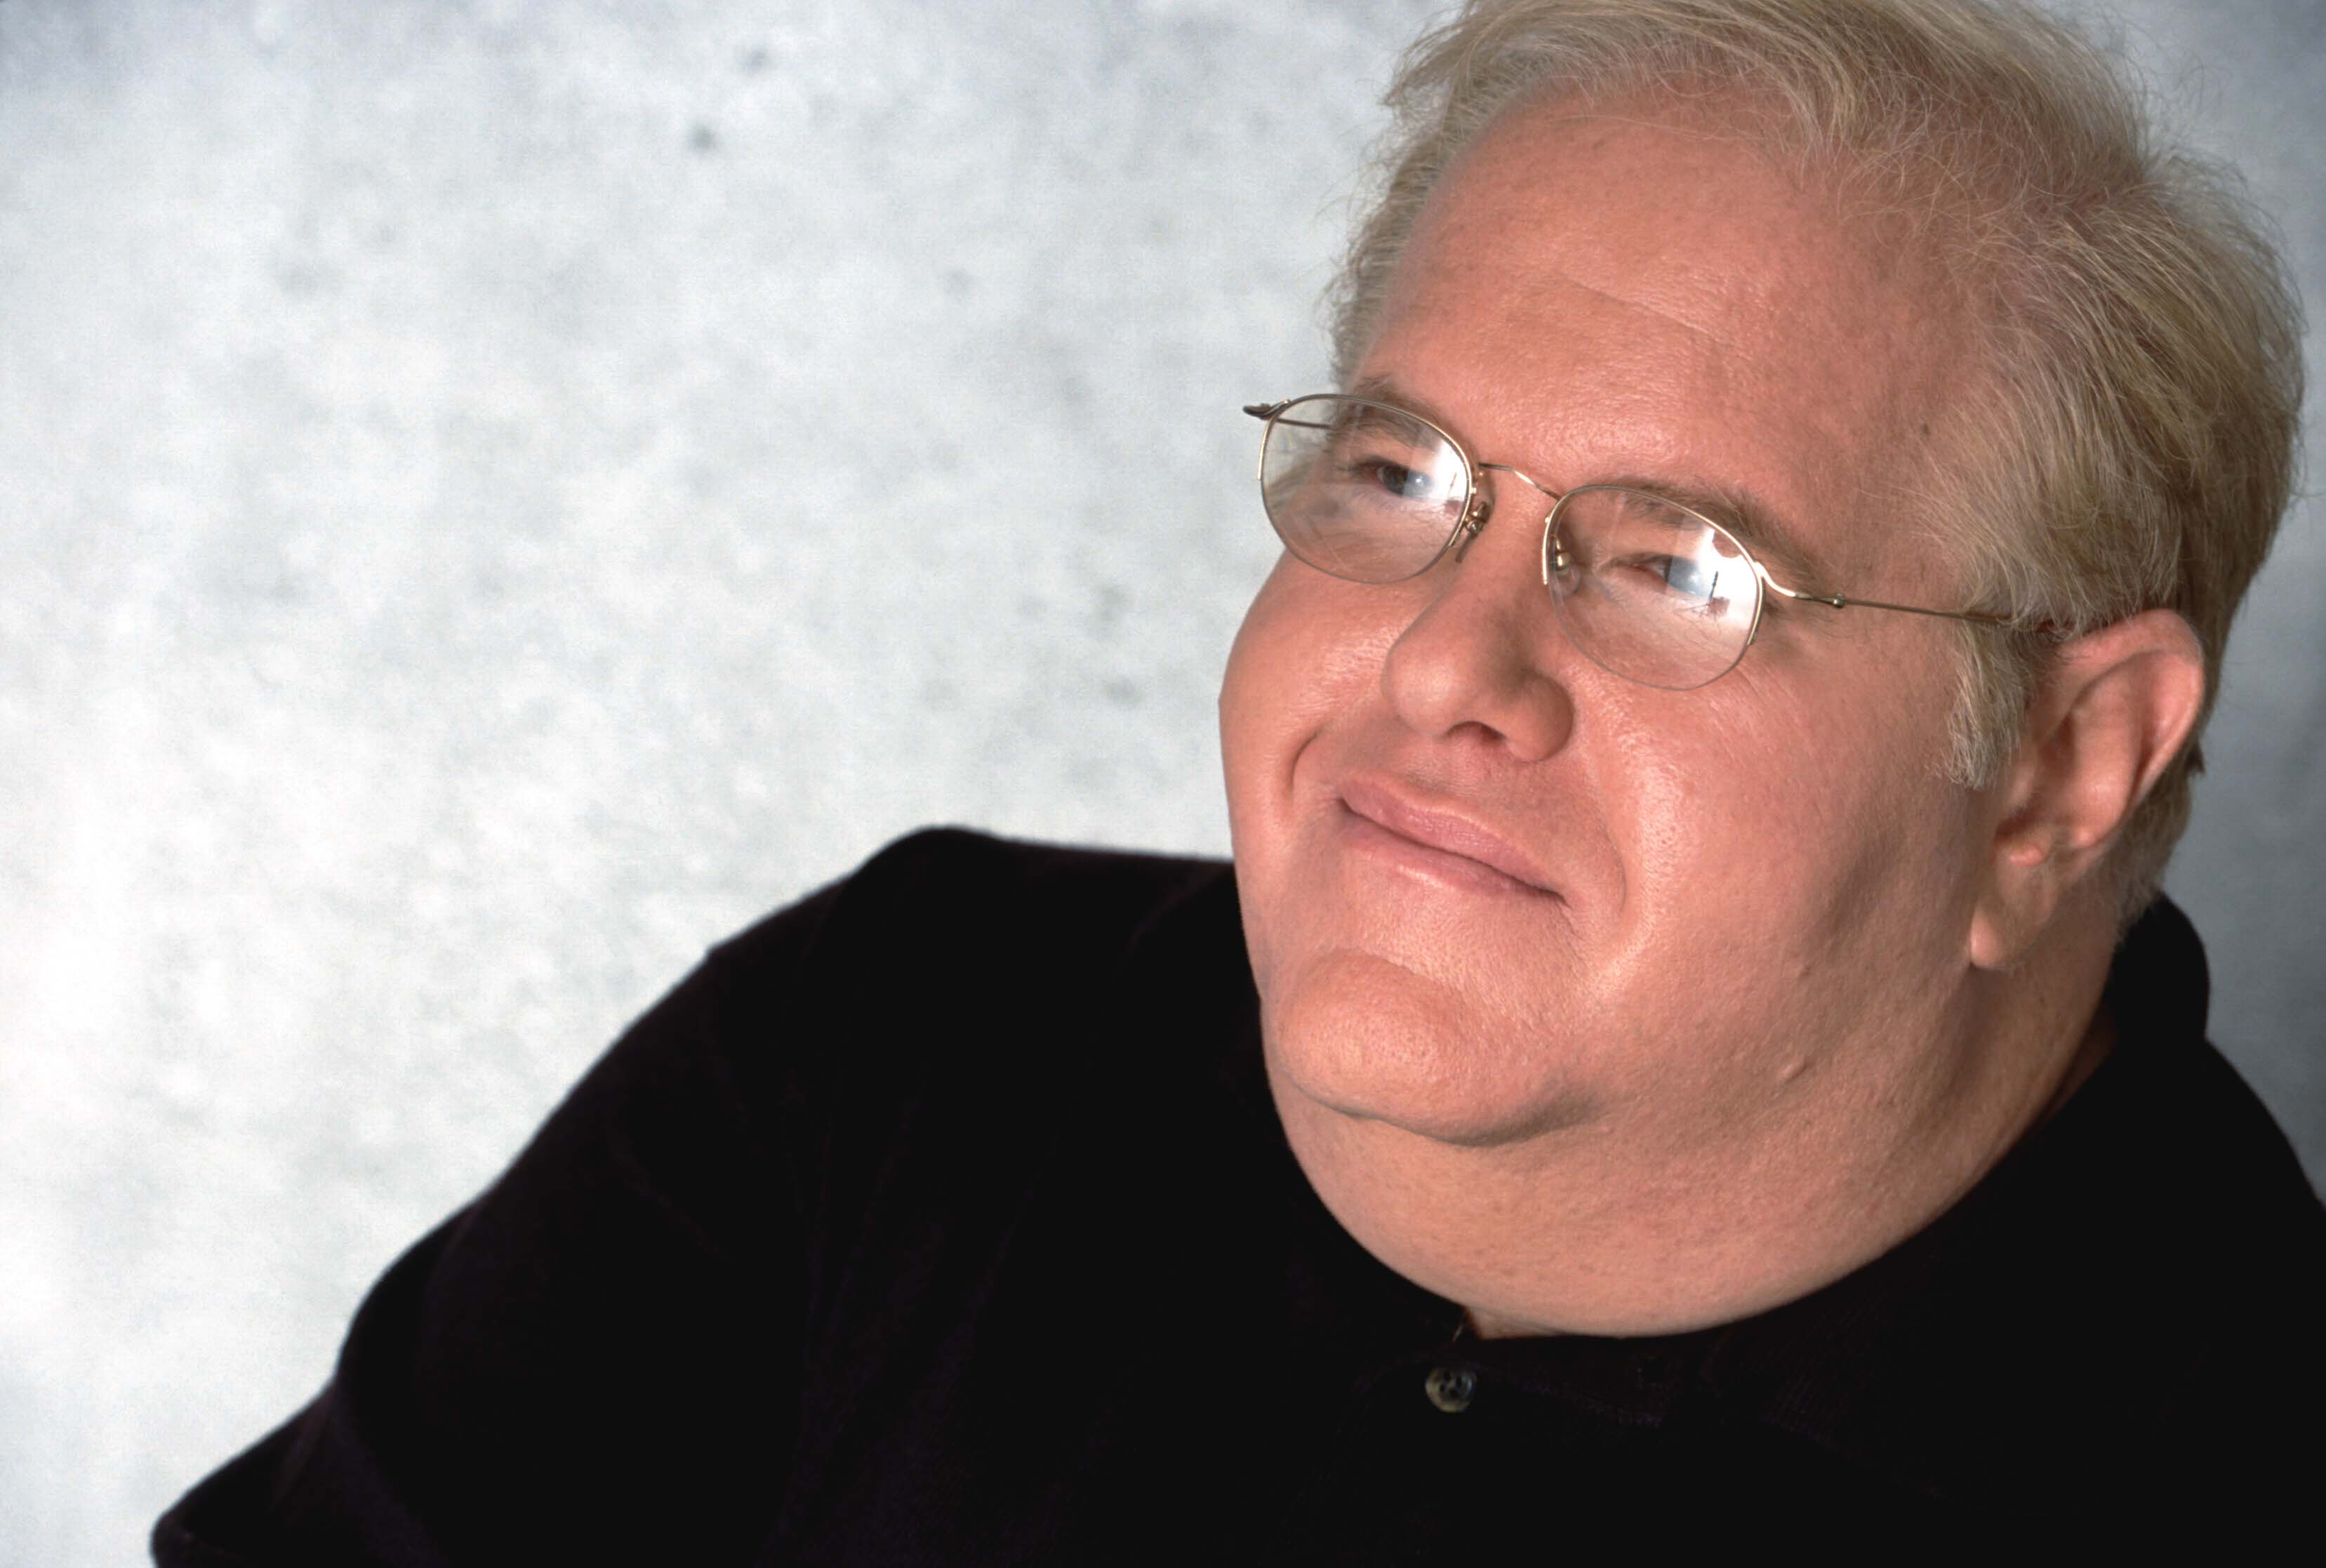 LOS ANGELES, CA - 2002:  American record producer and manager Lou Pearlman (June 19, 1954 'u2013 August 19, 2016) poses for a